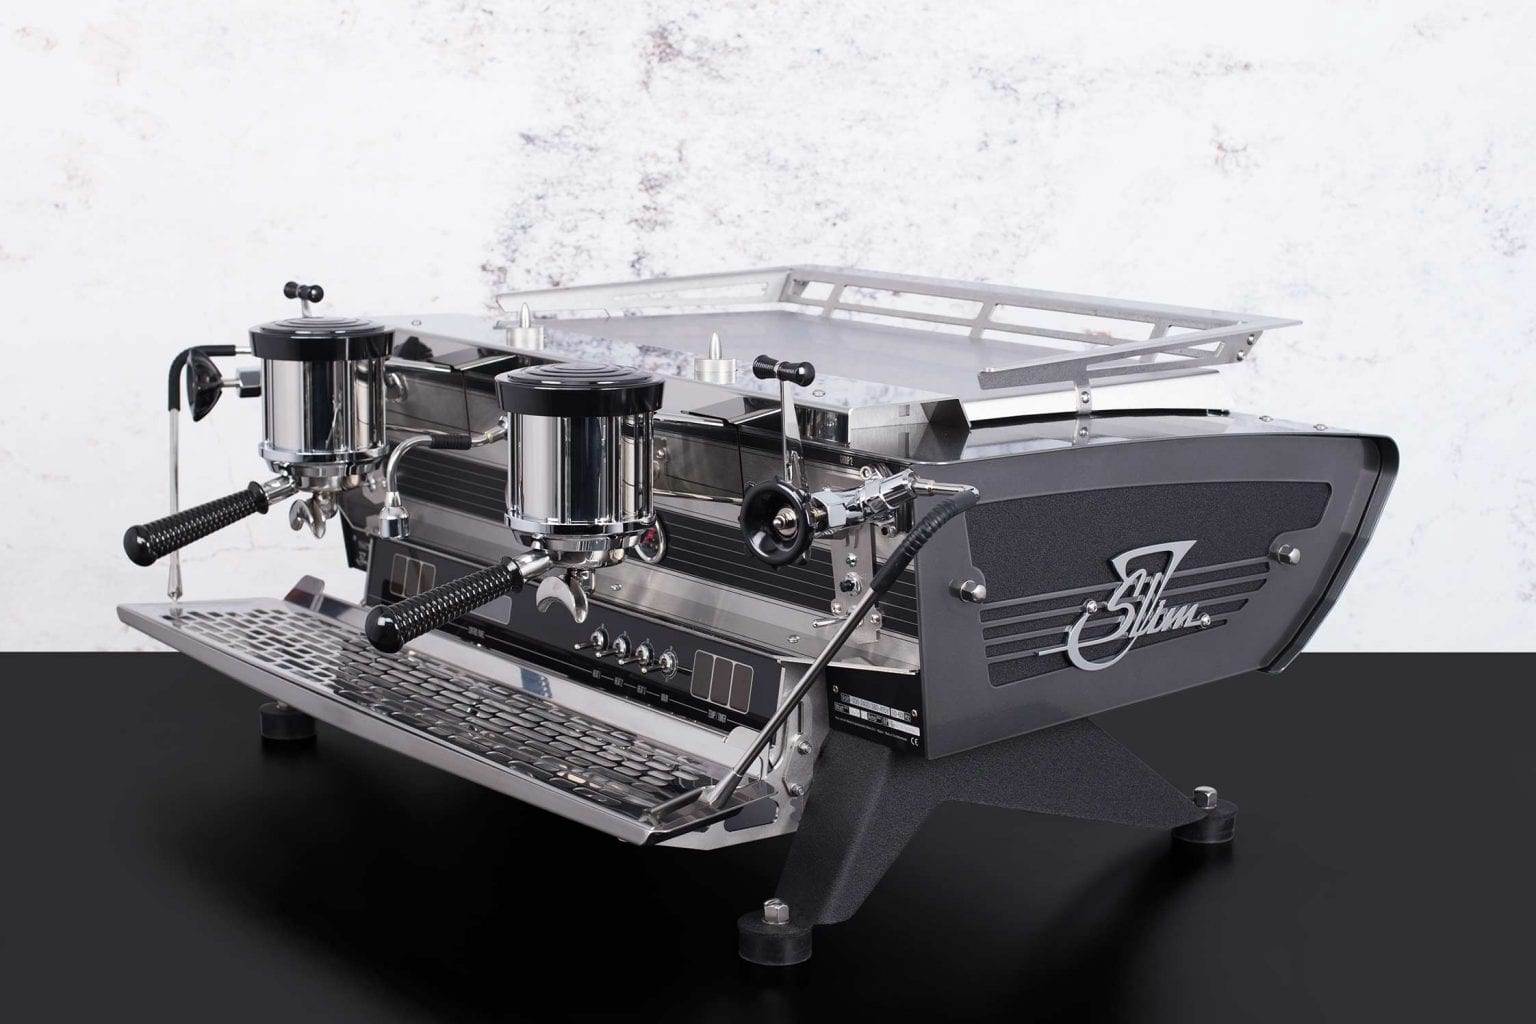 Commercial Espresso Machine Slim Jim Standard